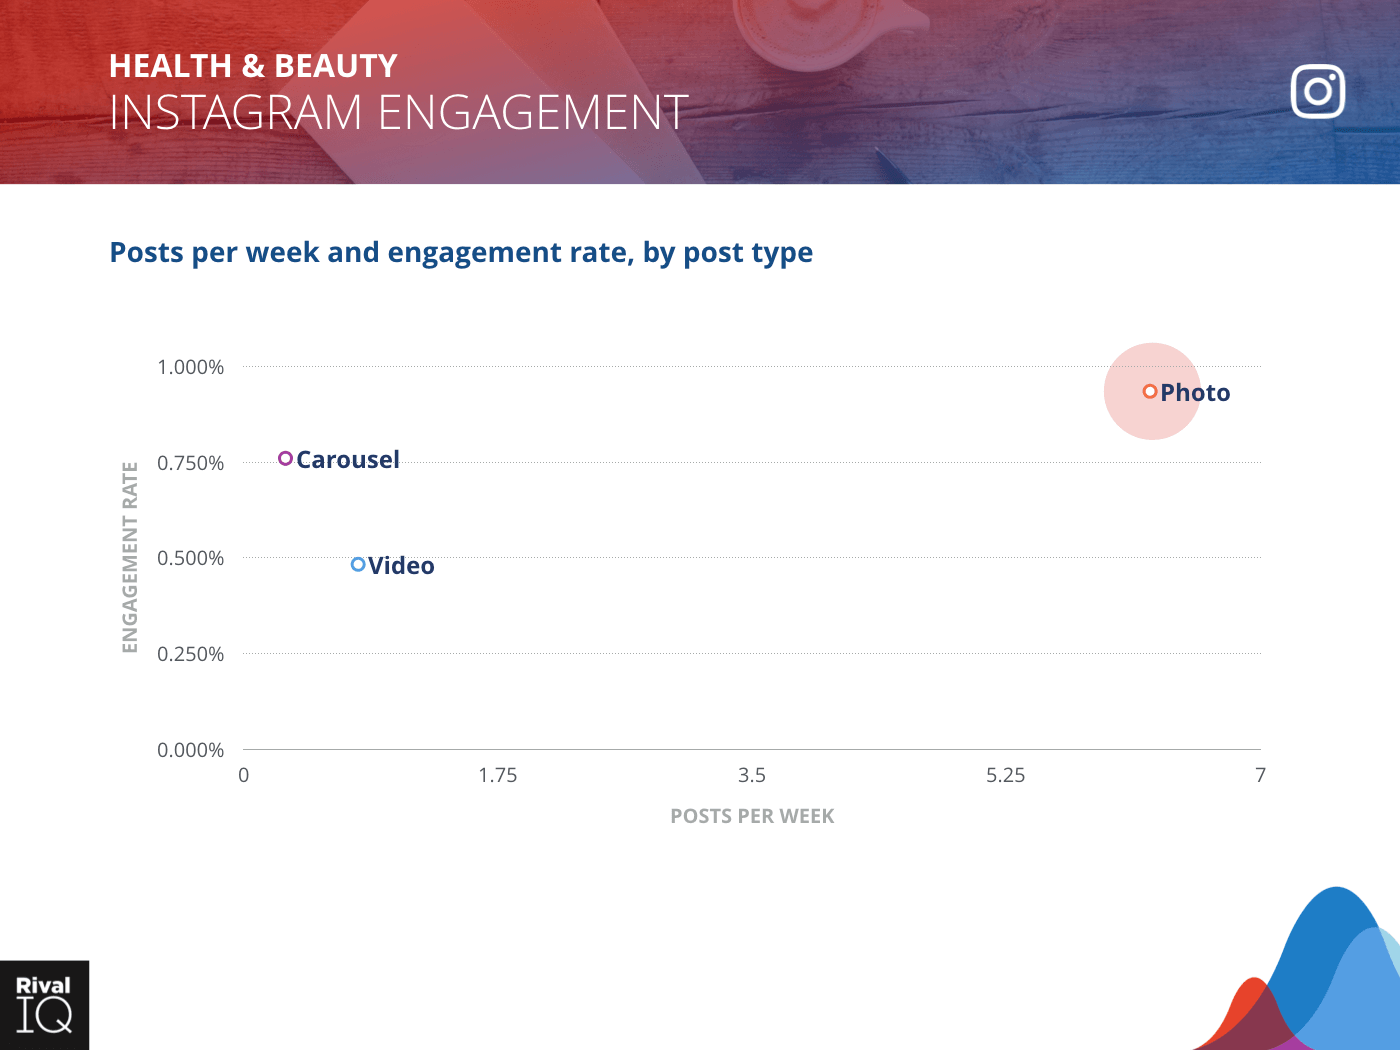 Health & Beauty Industry: scatter graph, average post per week by type and engagement rate on Instagram